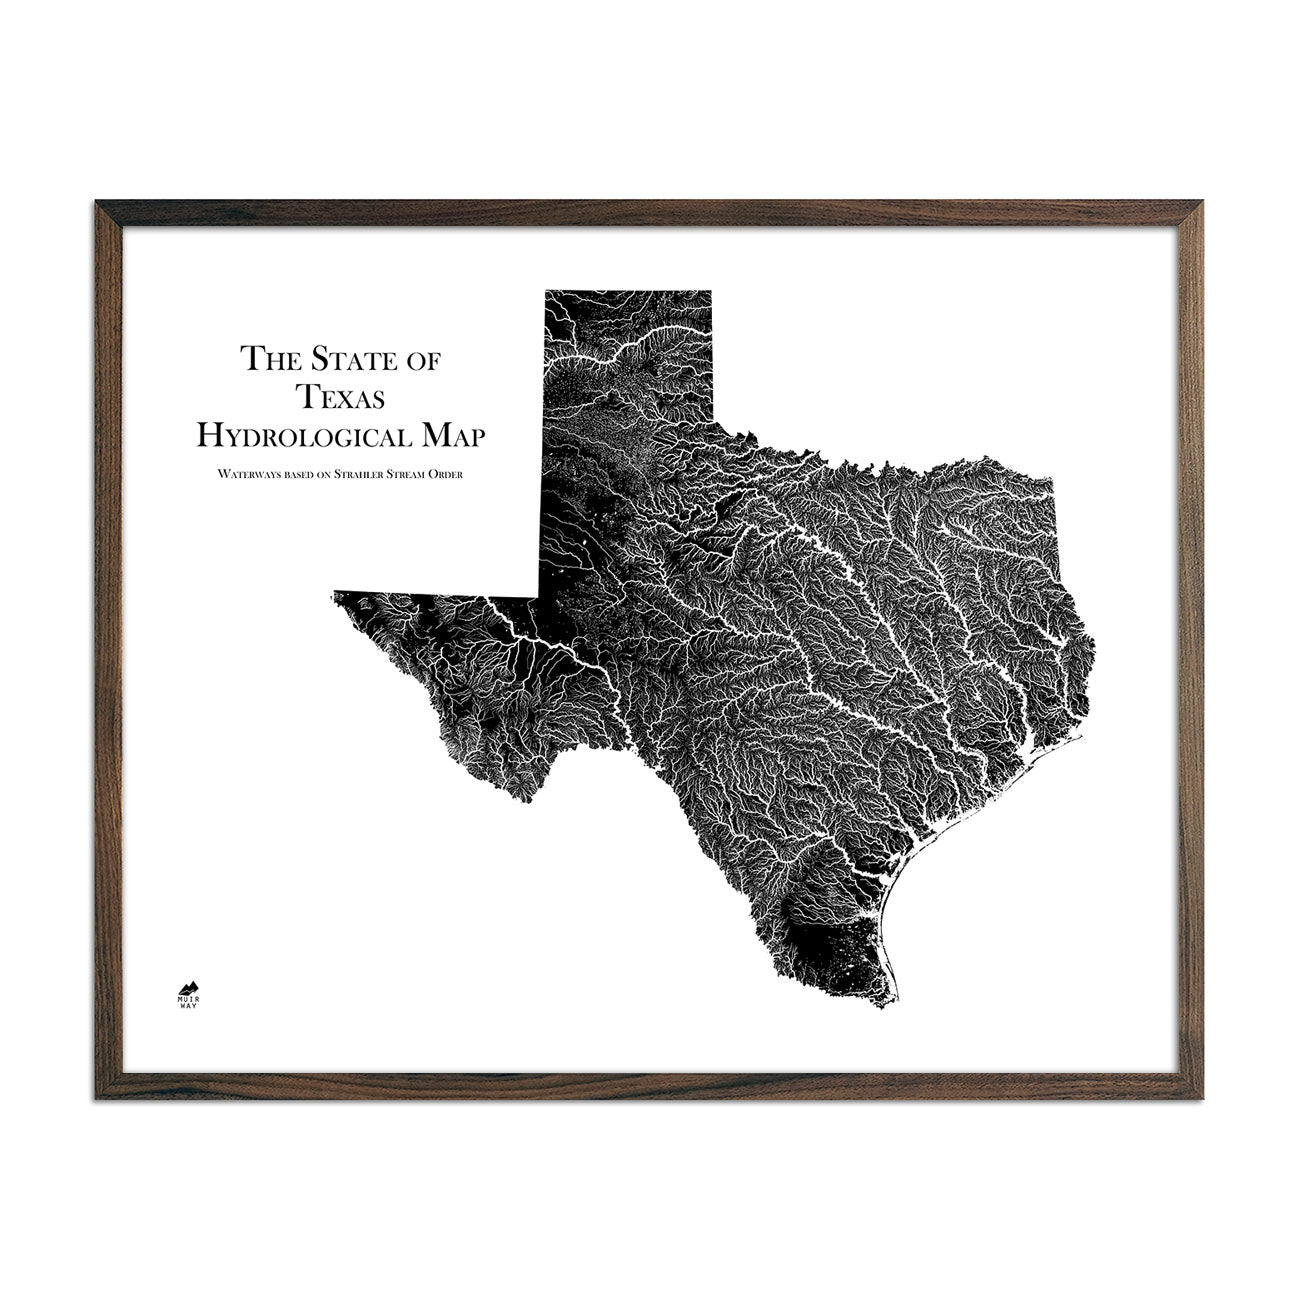 Texas Hydrological Map